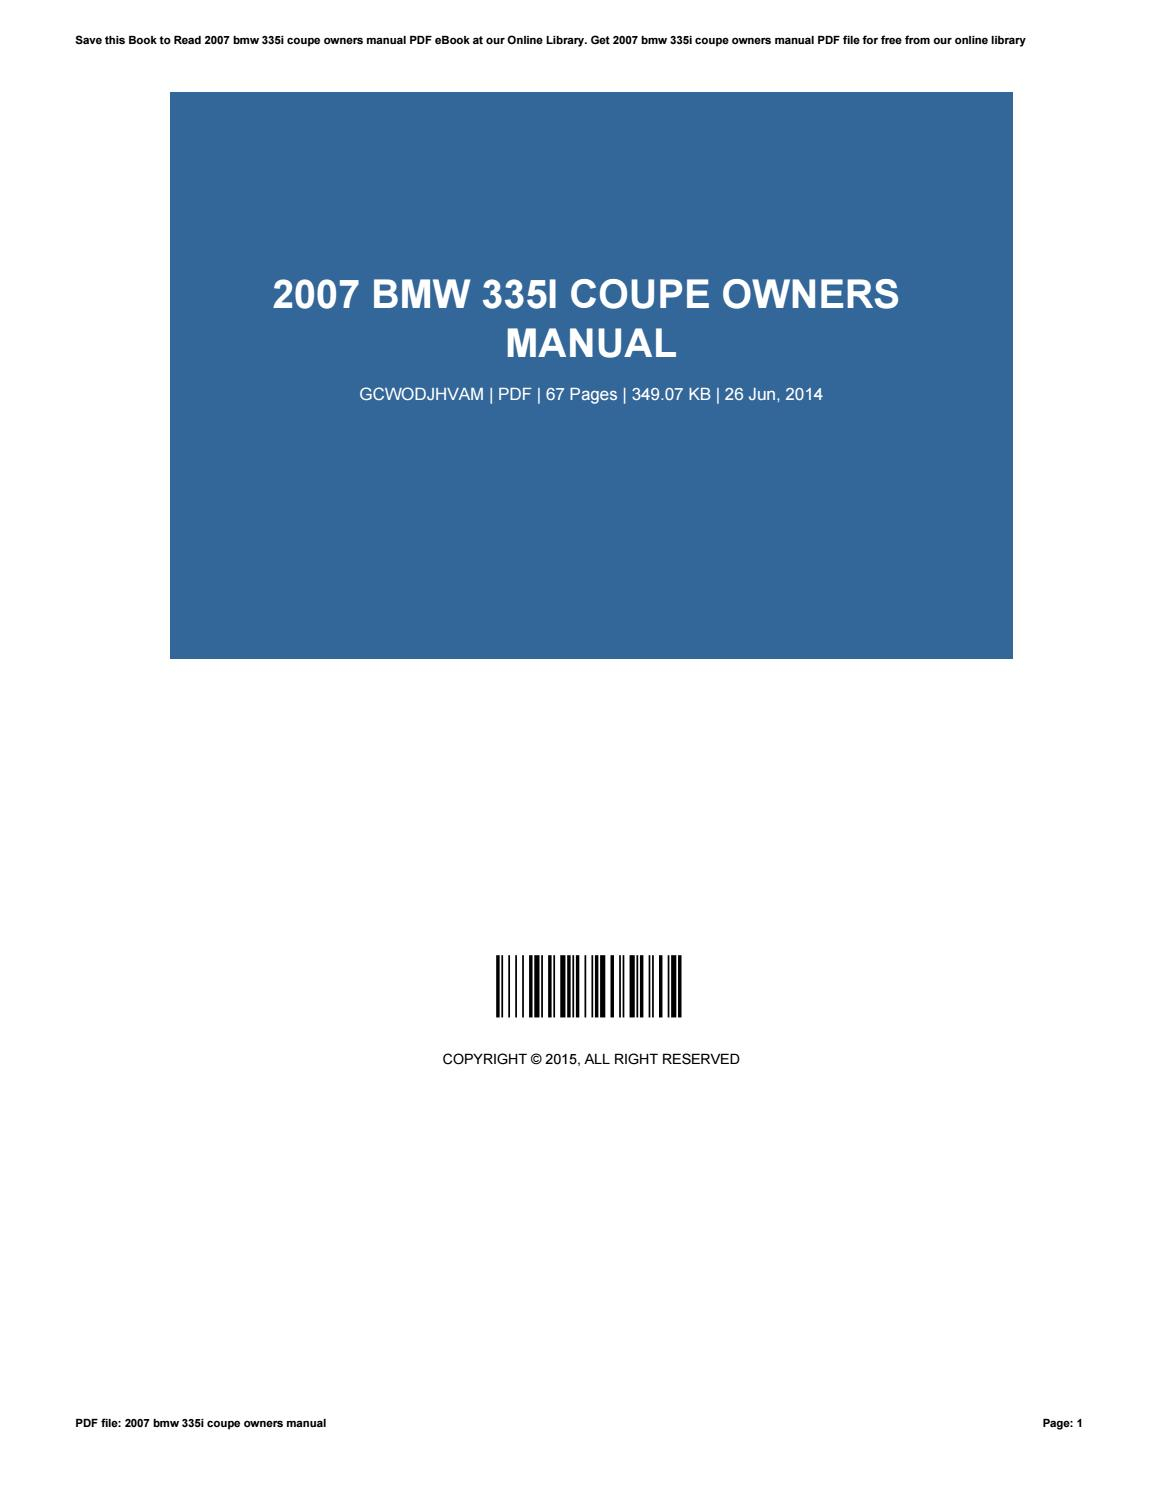 2007 bmw 335i coupe owners manual by MarniGreen1695 - issuu